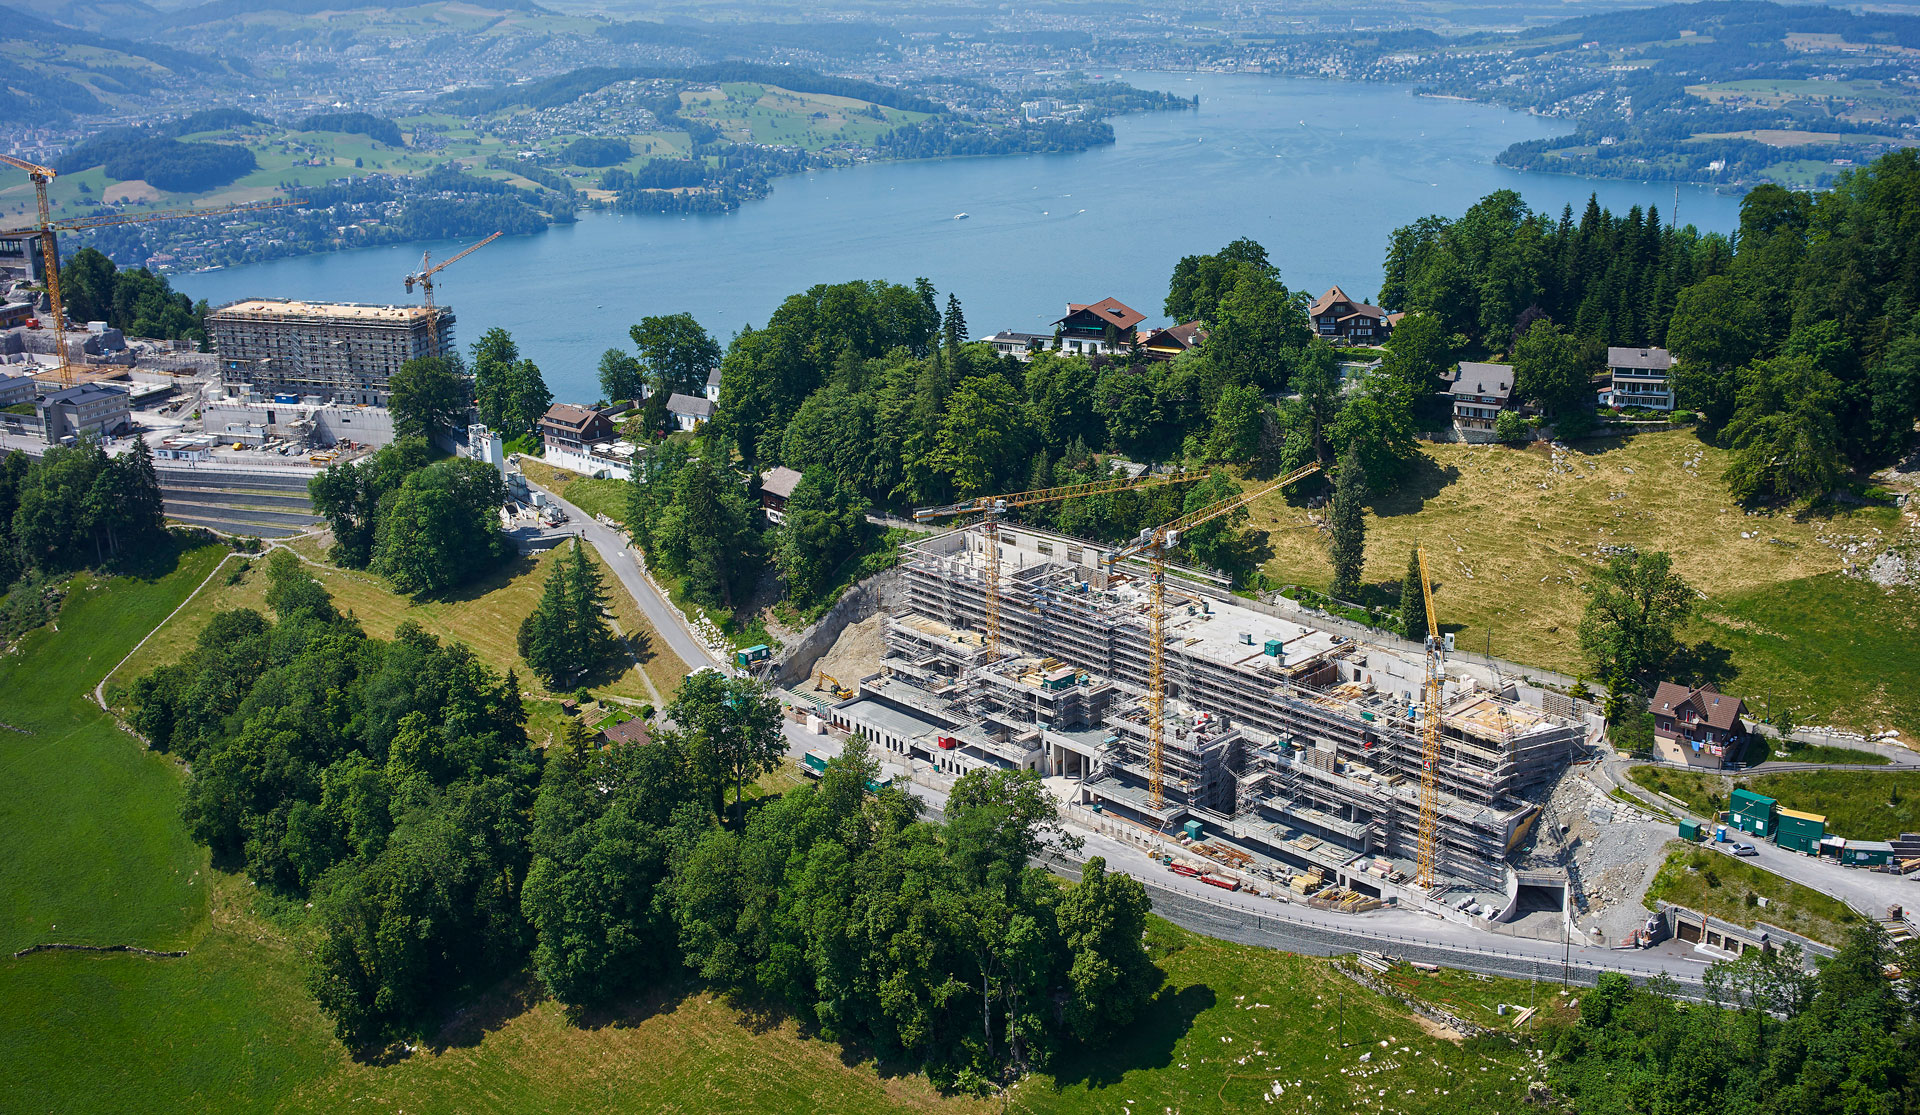 <p>Healthy Living Hotel - Bürgenstock (CH) - August 2015</p>